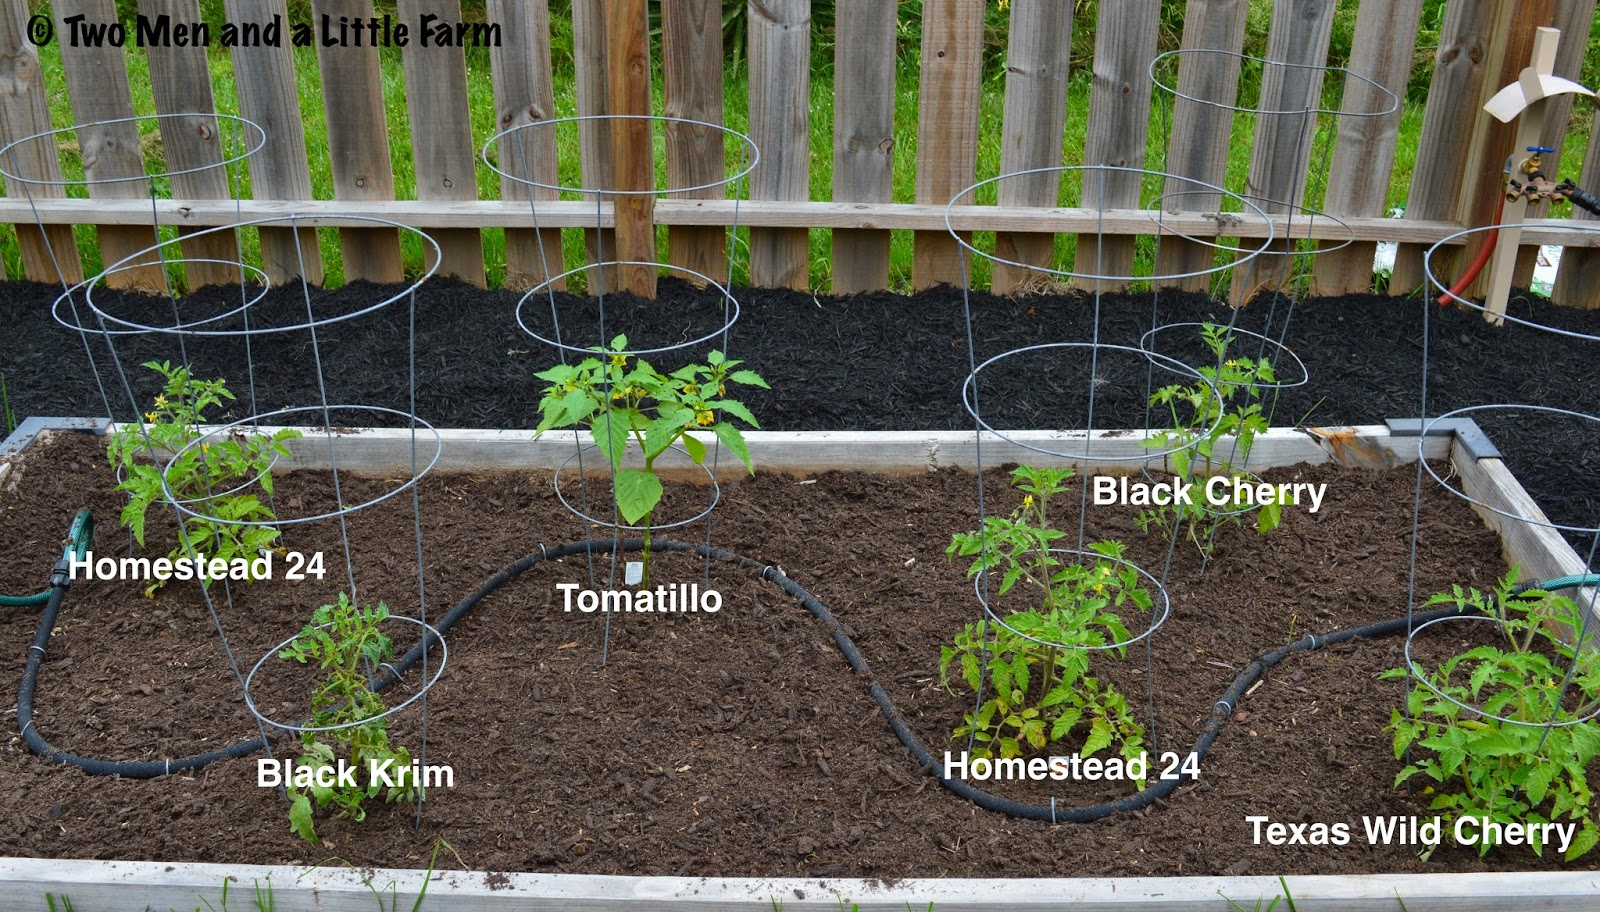 Two Men and a Little Farm: TOMATO BED AND SQUASH BED